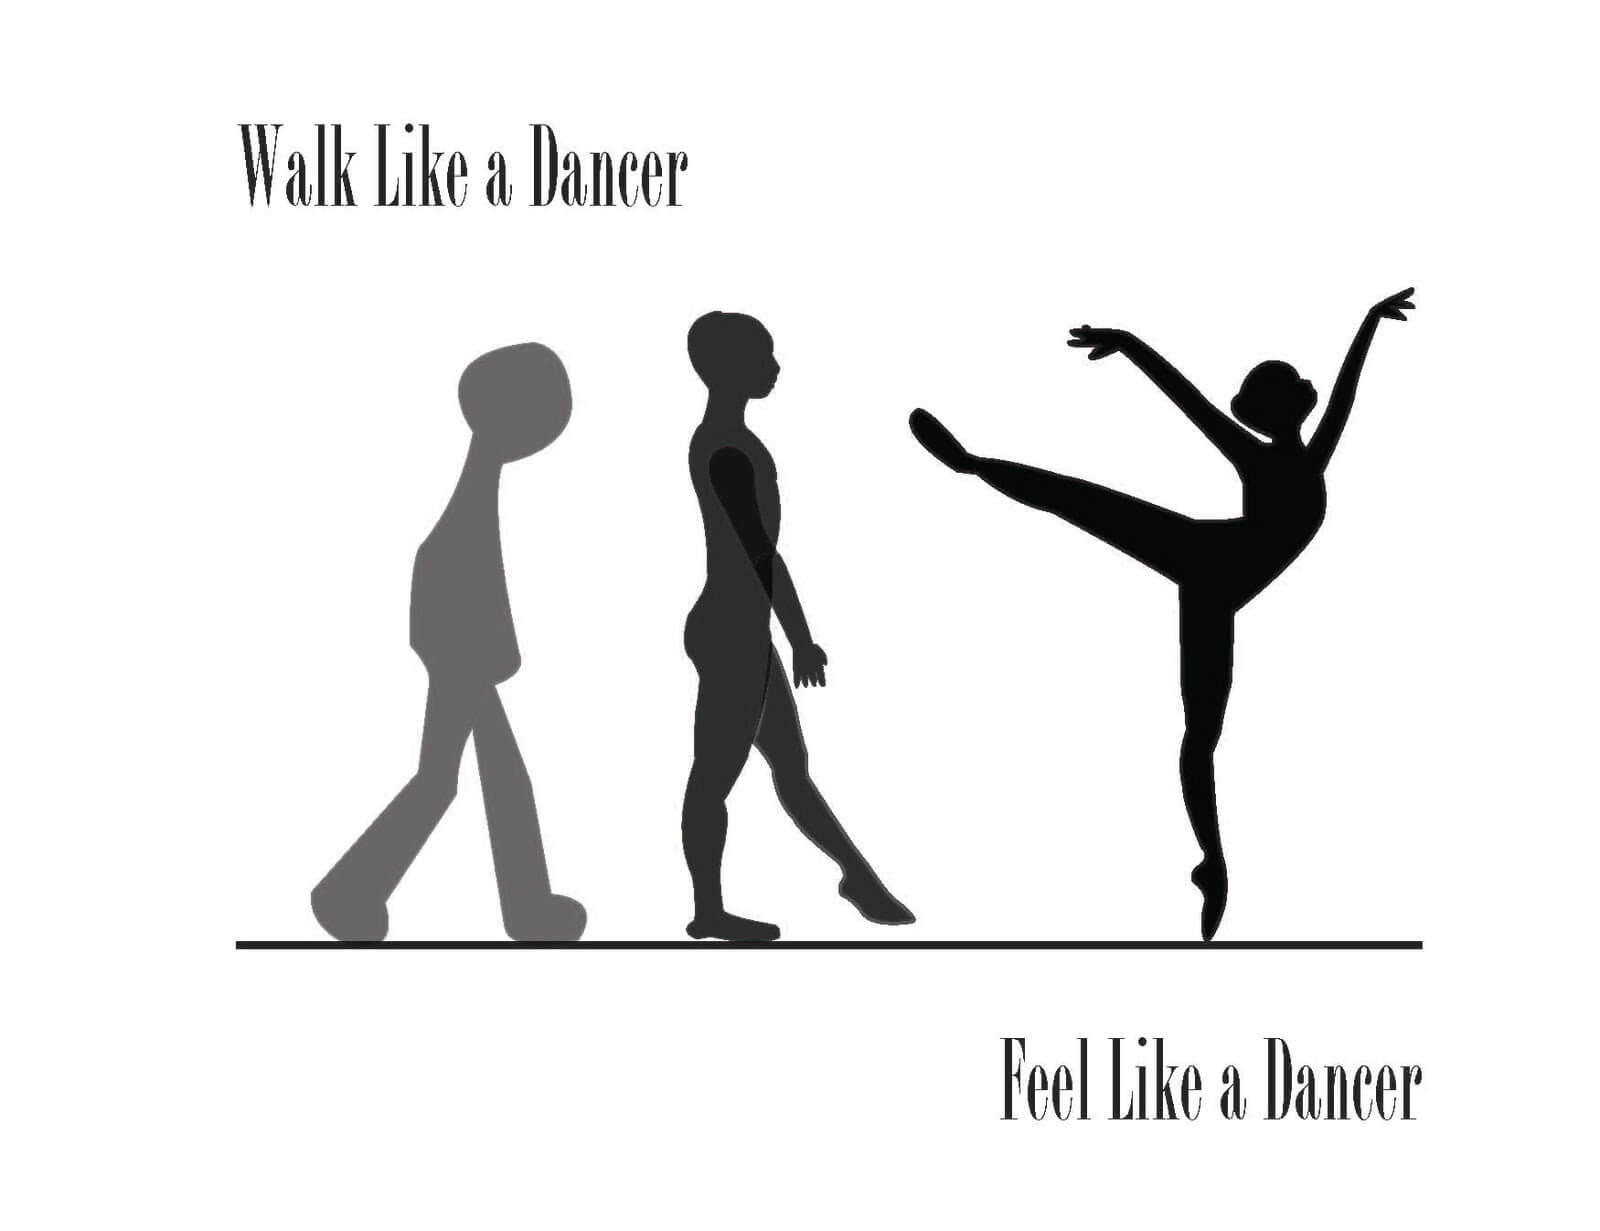 Walk like a Dancer